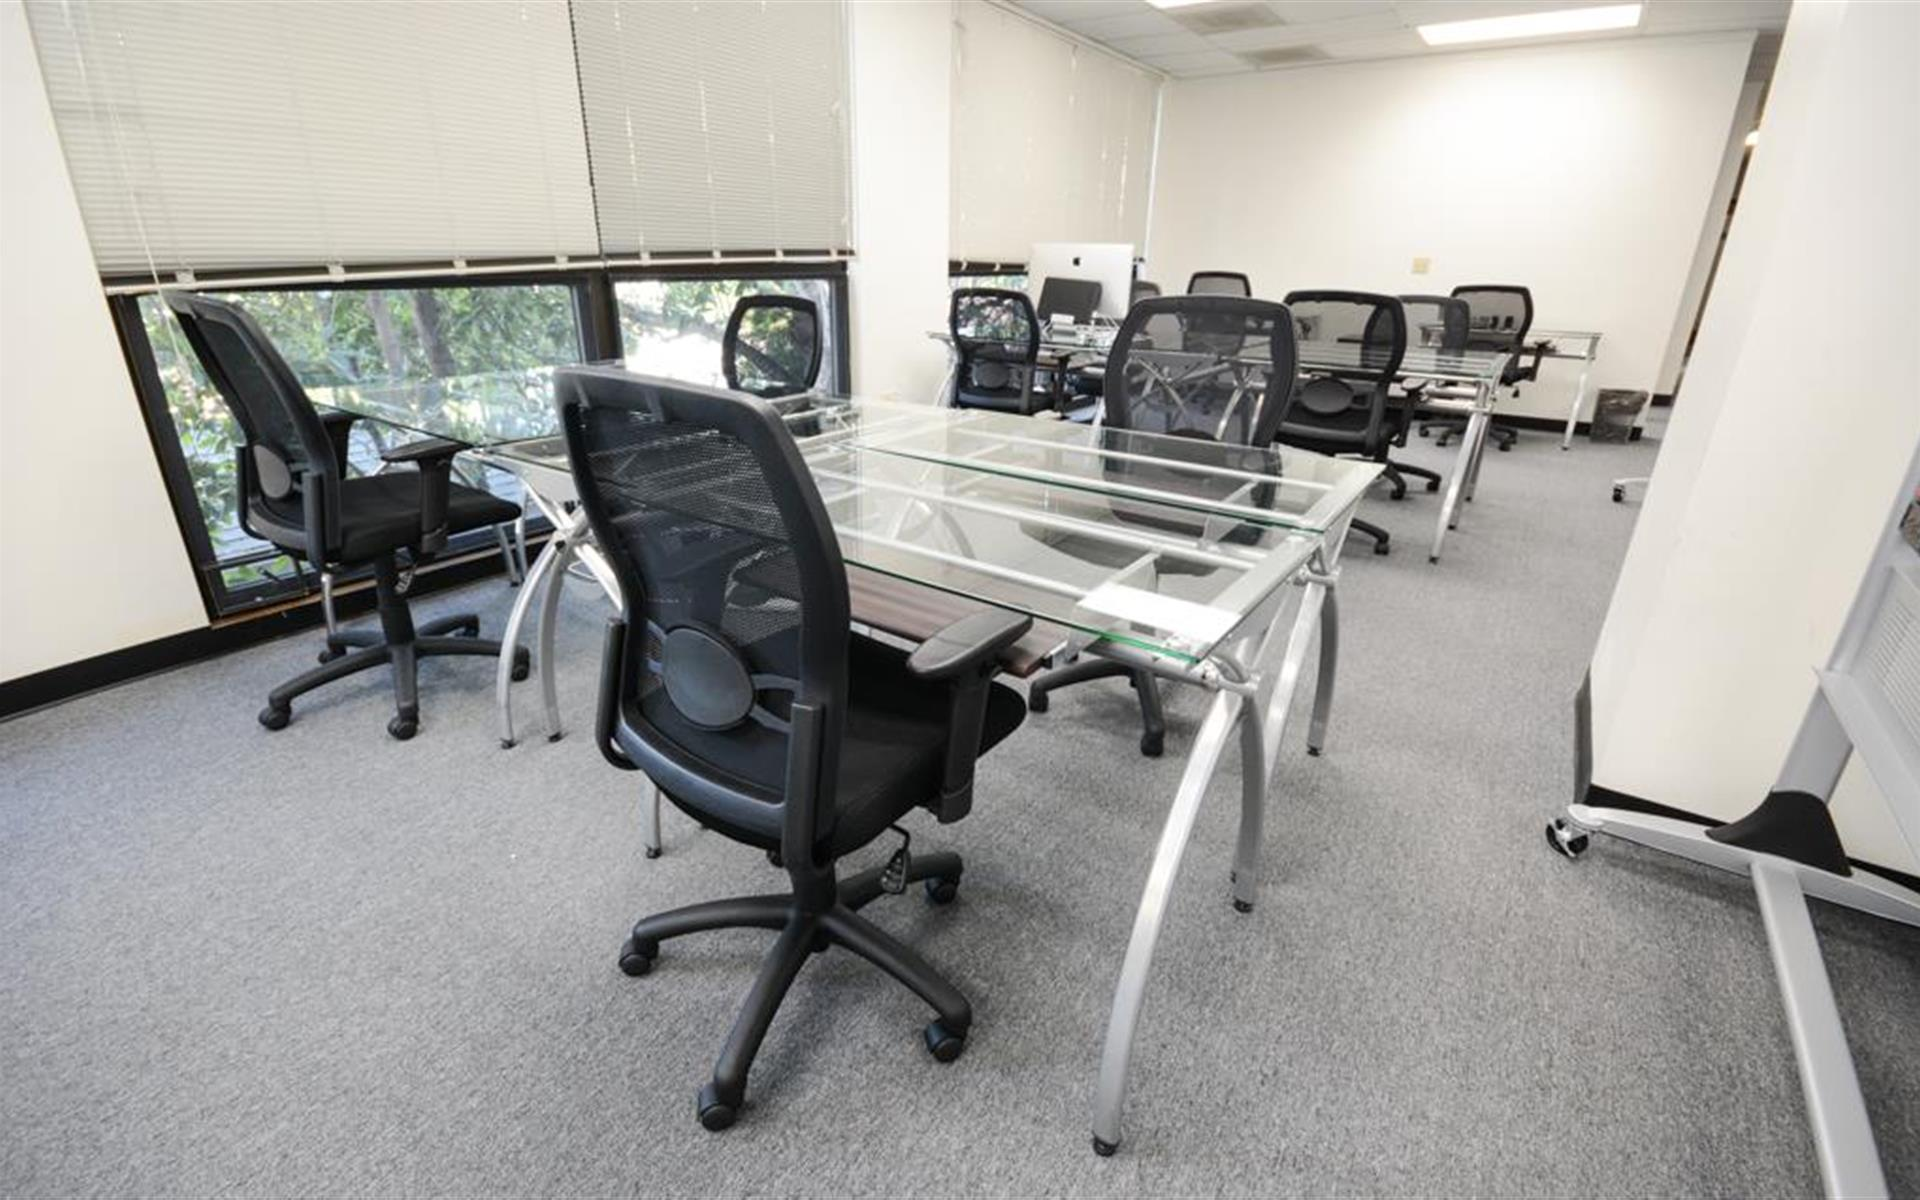 Start Smart Labs - Big Data Incubator/Co-Working Space - Dedicated Desk